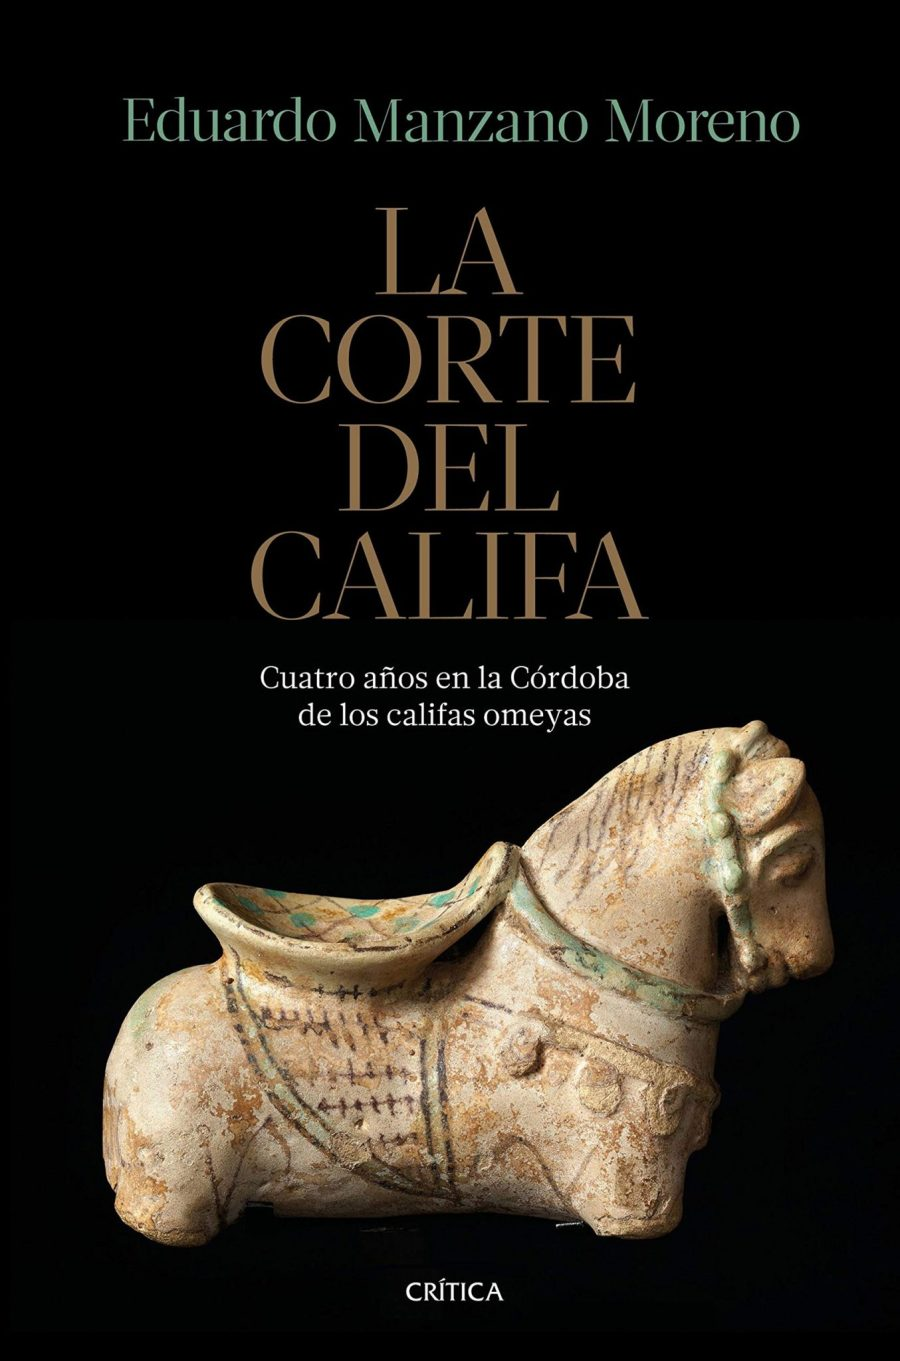 La corte del califa Book Cover